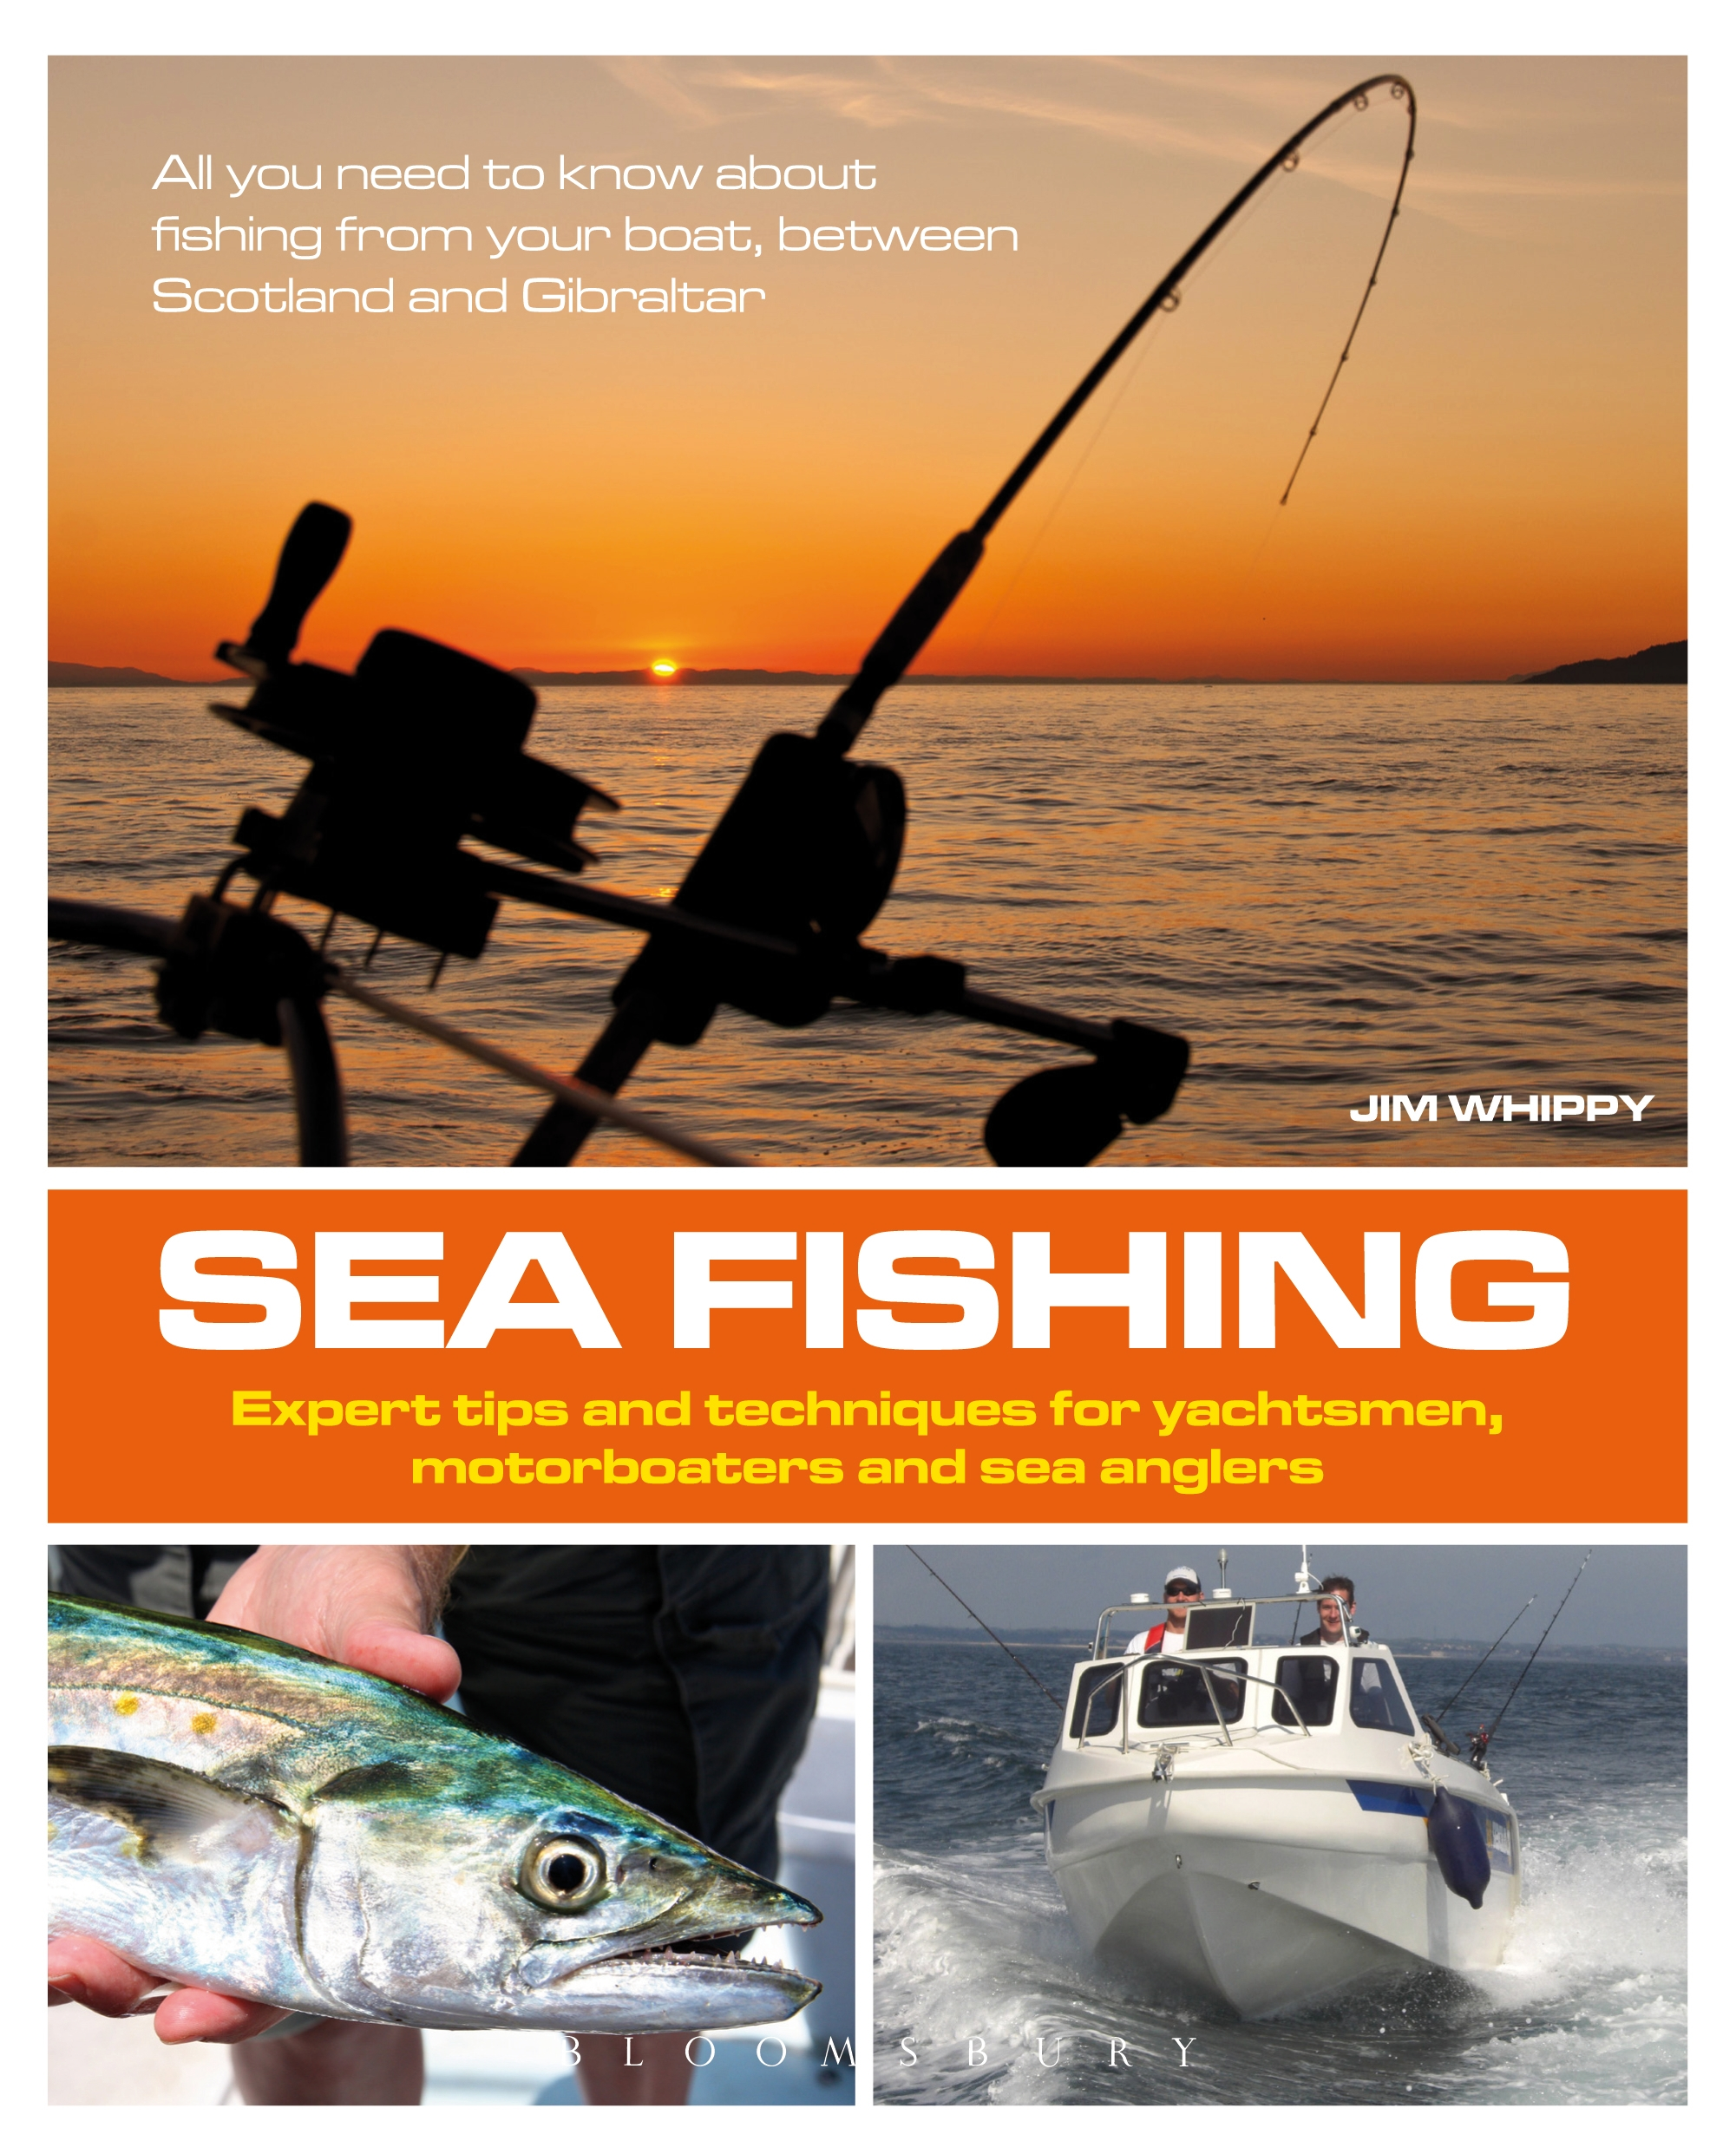 Sea Fishing Expert Tips and Techniques for Yachtsmen,  Motorboaters and Sea Anglers